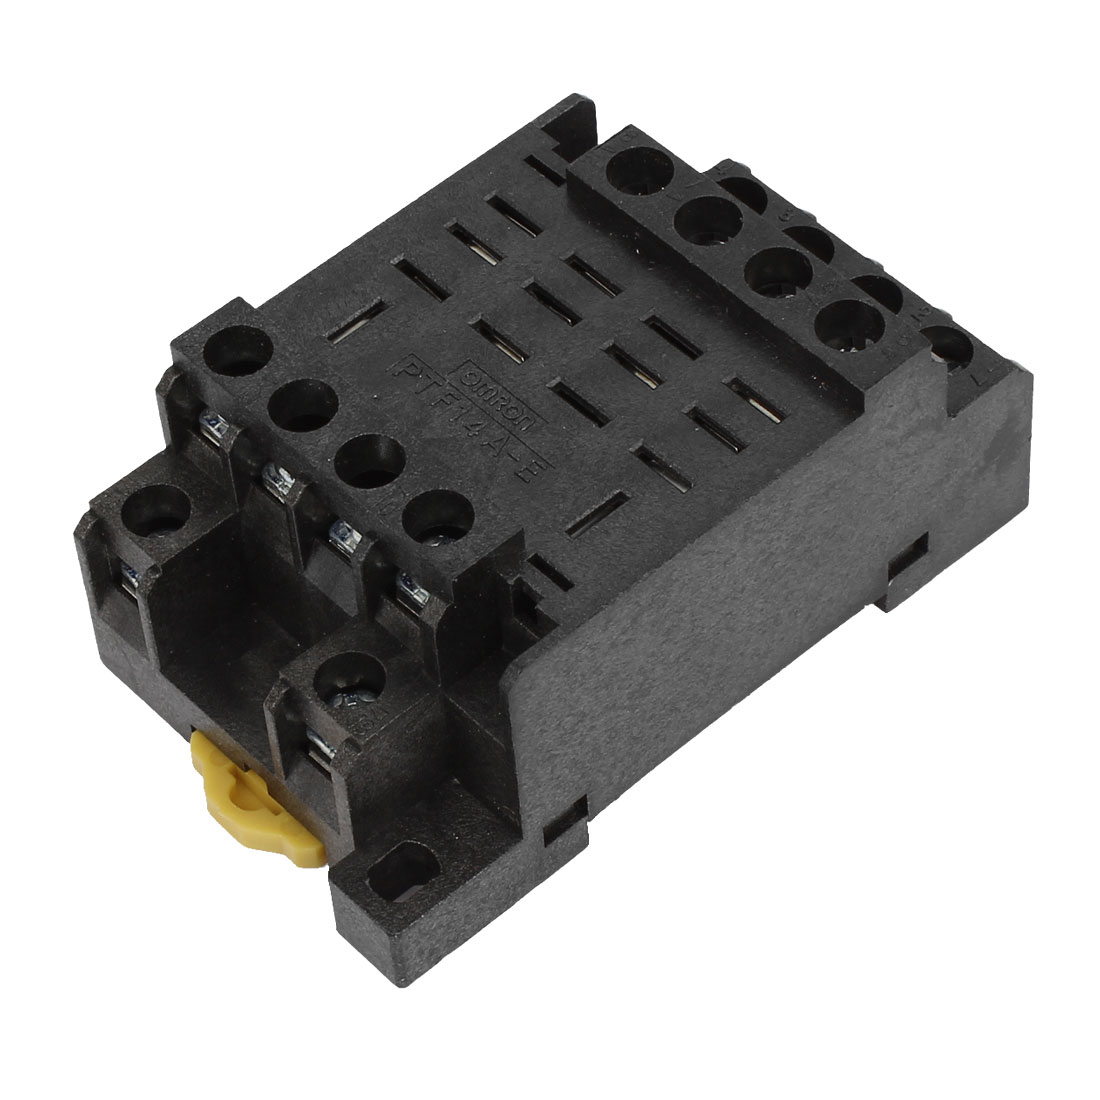 PTF14A-E 14 Screw Terminal Relay Socket Base DIN Rail for HH64P Y4NJ